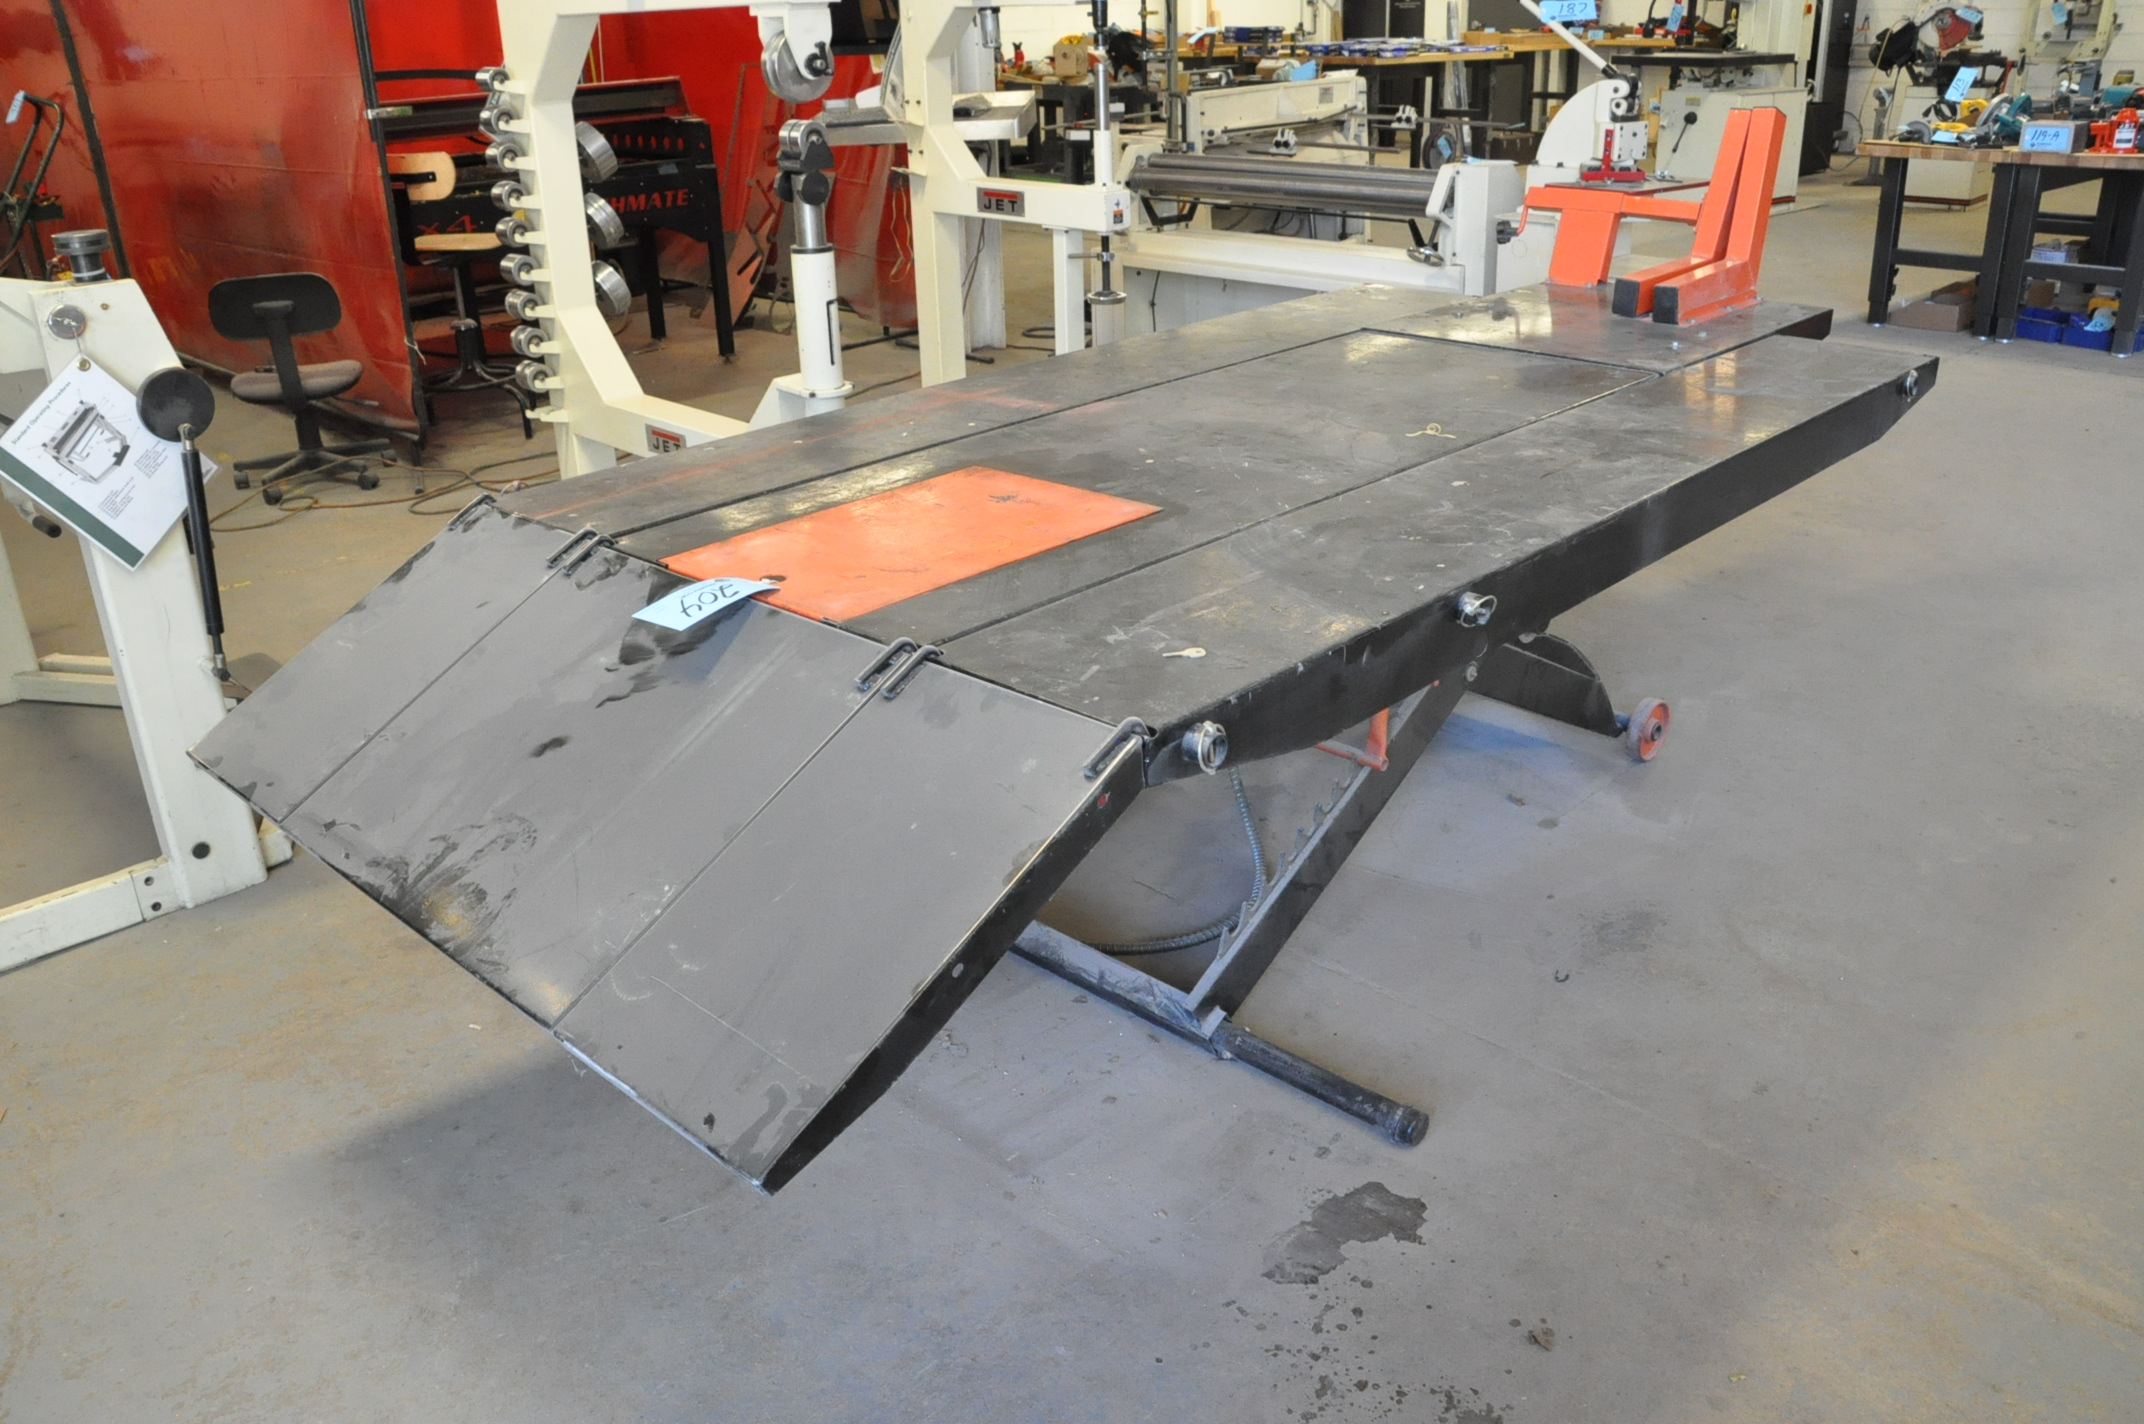 """No Name Model JMML-1000, Motorcycle Lift Table, S/n N/a, Table Size: 48"""" x 96"""", 1,500 LB Capacity"""